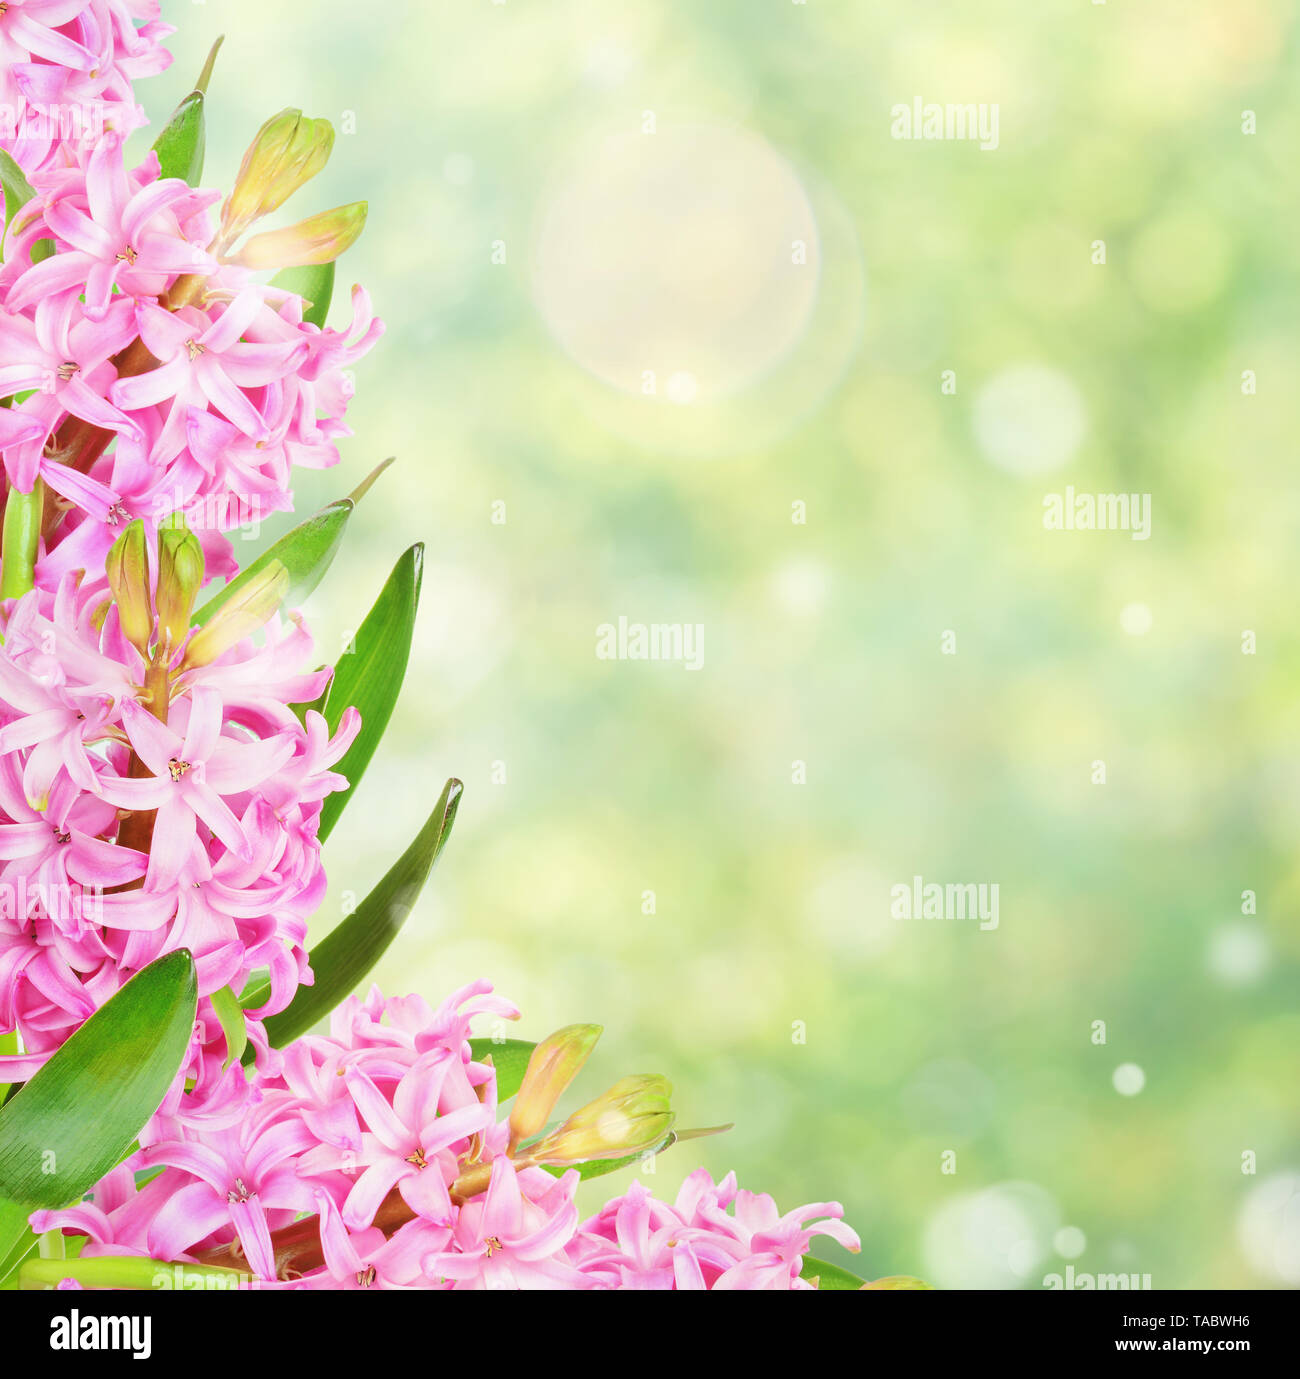 Beautiful frame of pink Hyacinth flowers on the blurred abstract natural yellow-green background with bokeh, with copy-space - Stock Image